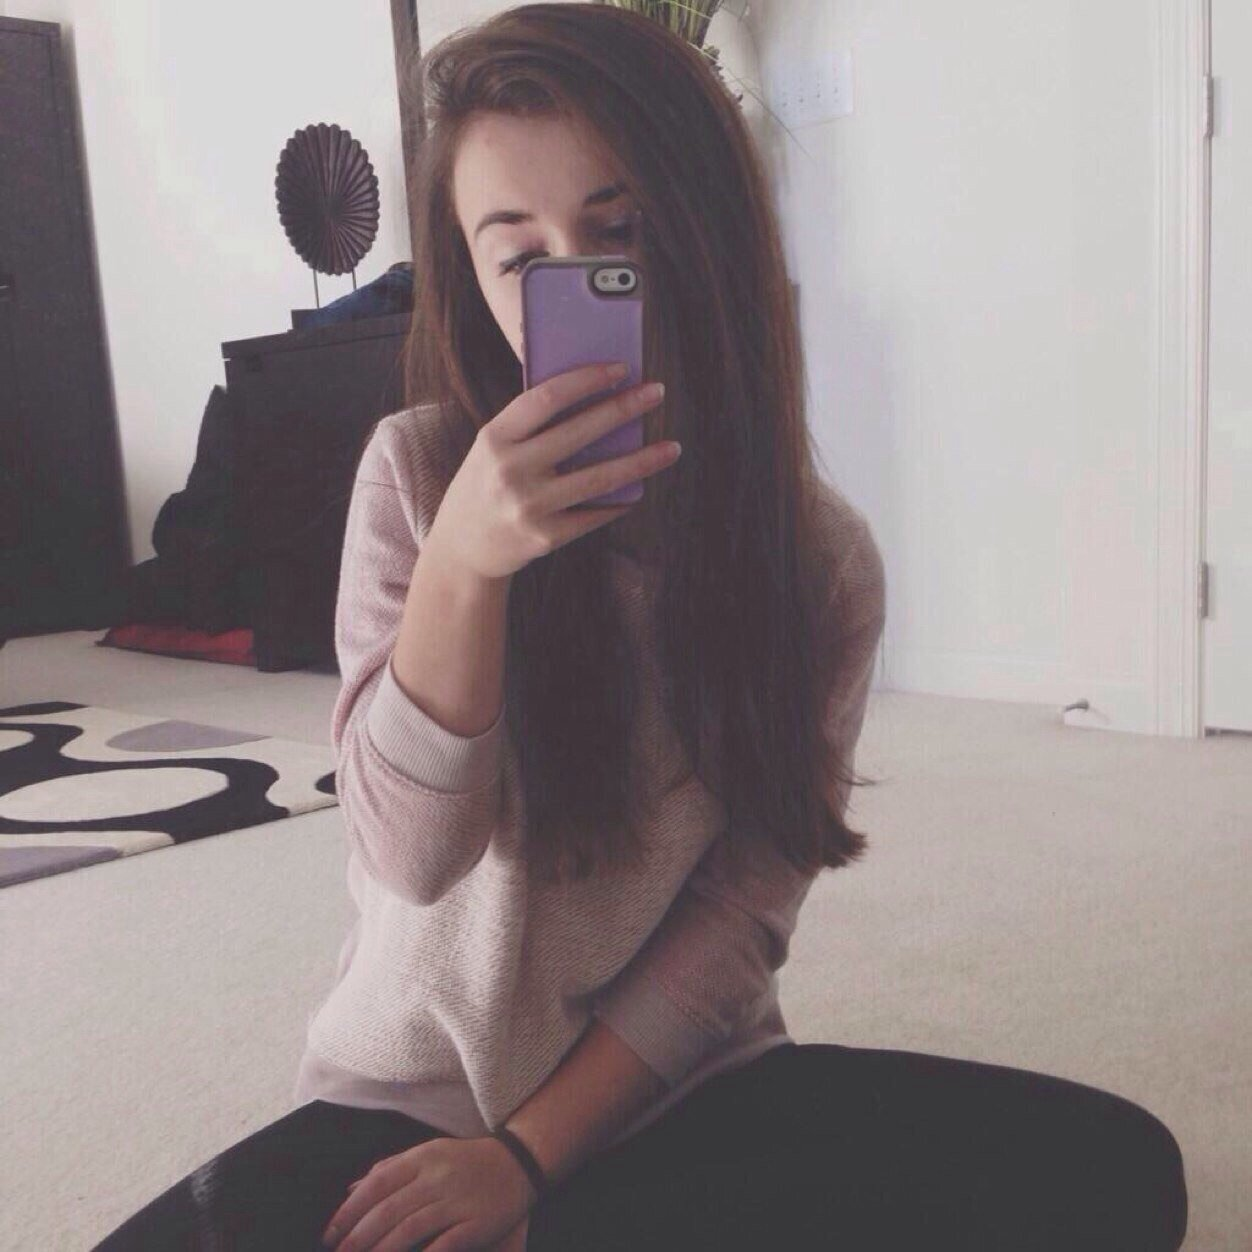 Pin Acacia Clark And Kian Lawley Twitter Fight On on Pinterest Morgan Demeola And Nash Grier